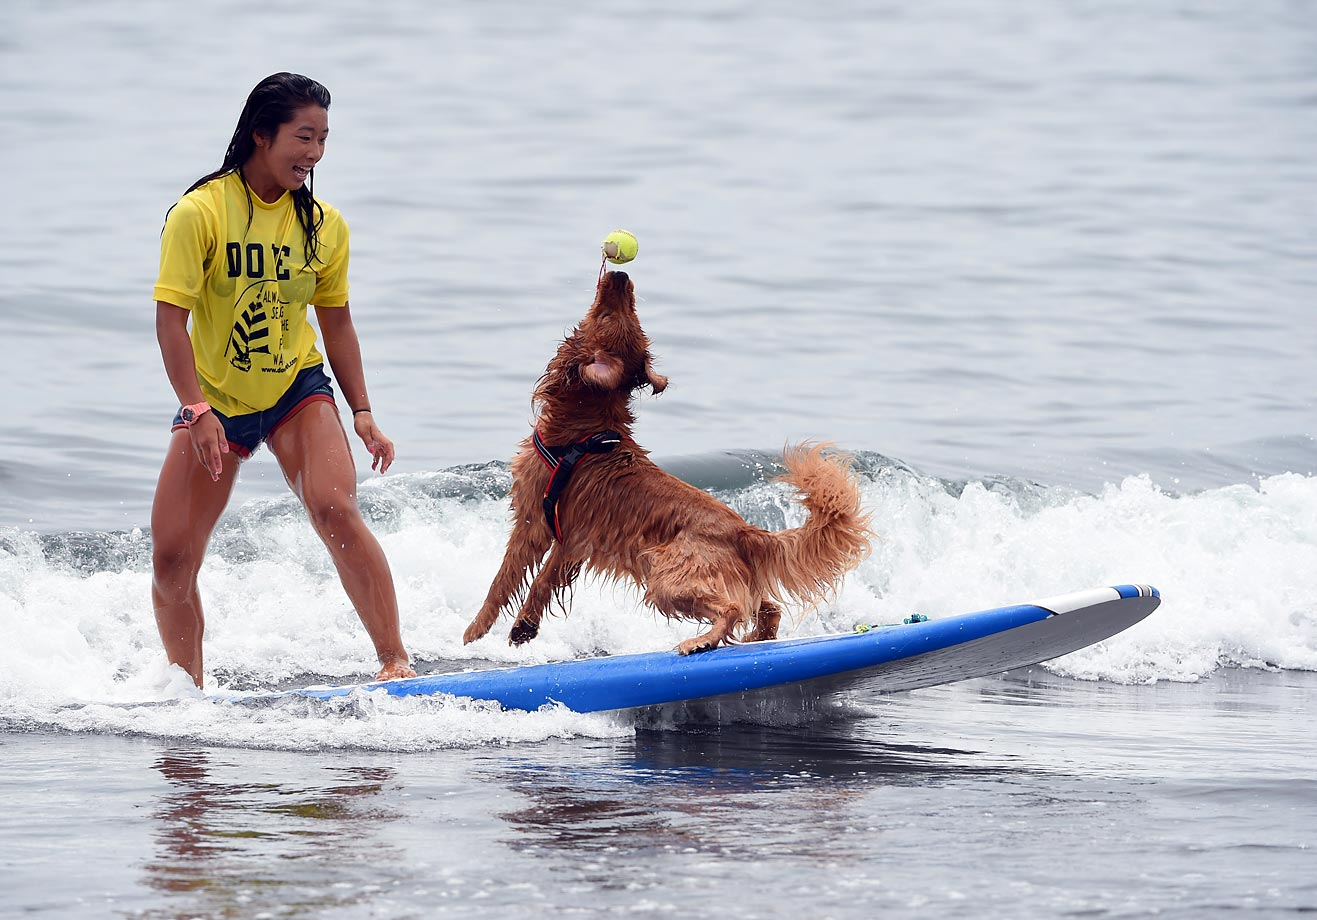 Bell catches a ball while riding on a wave during the animal surfing portion of the Mabo Royal Kj Cup surfing contest.